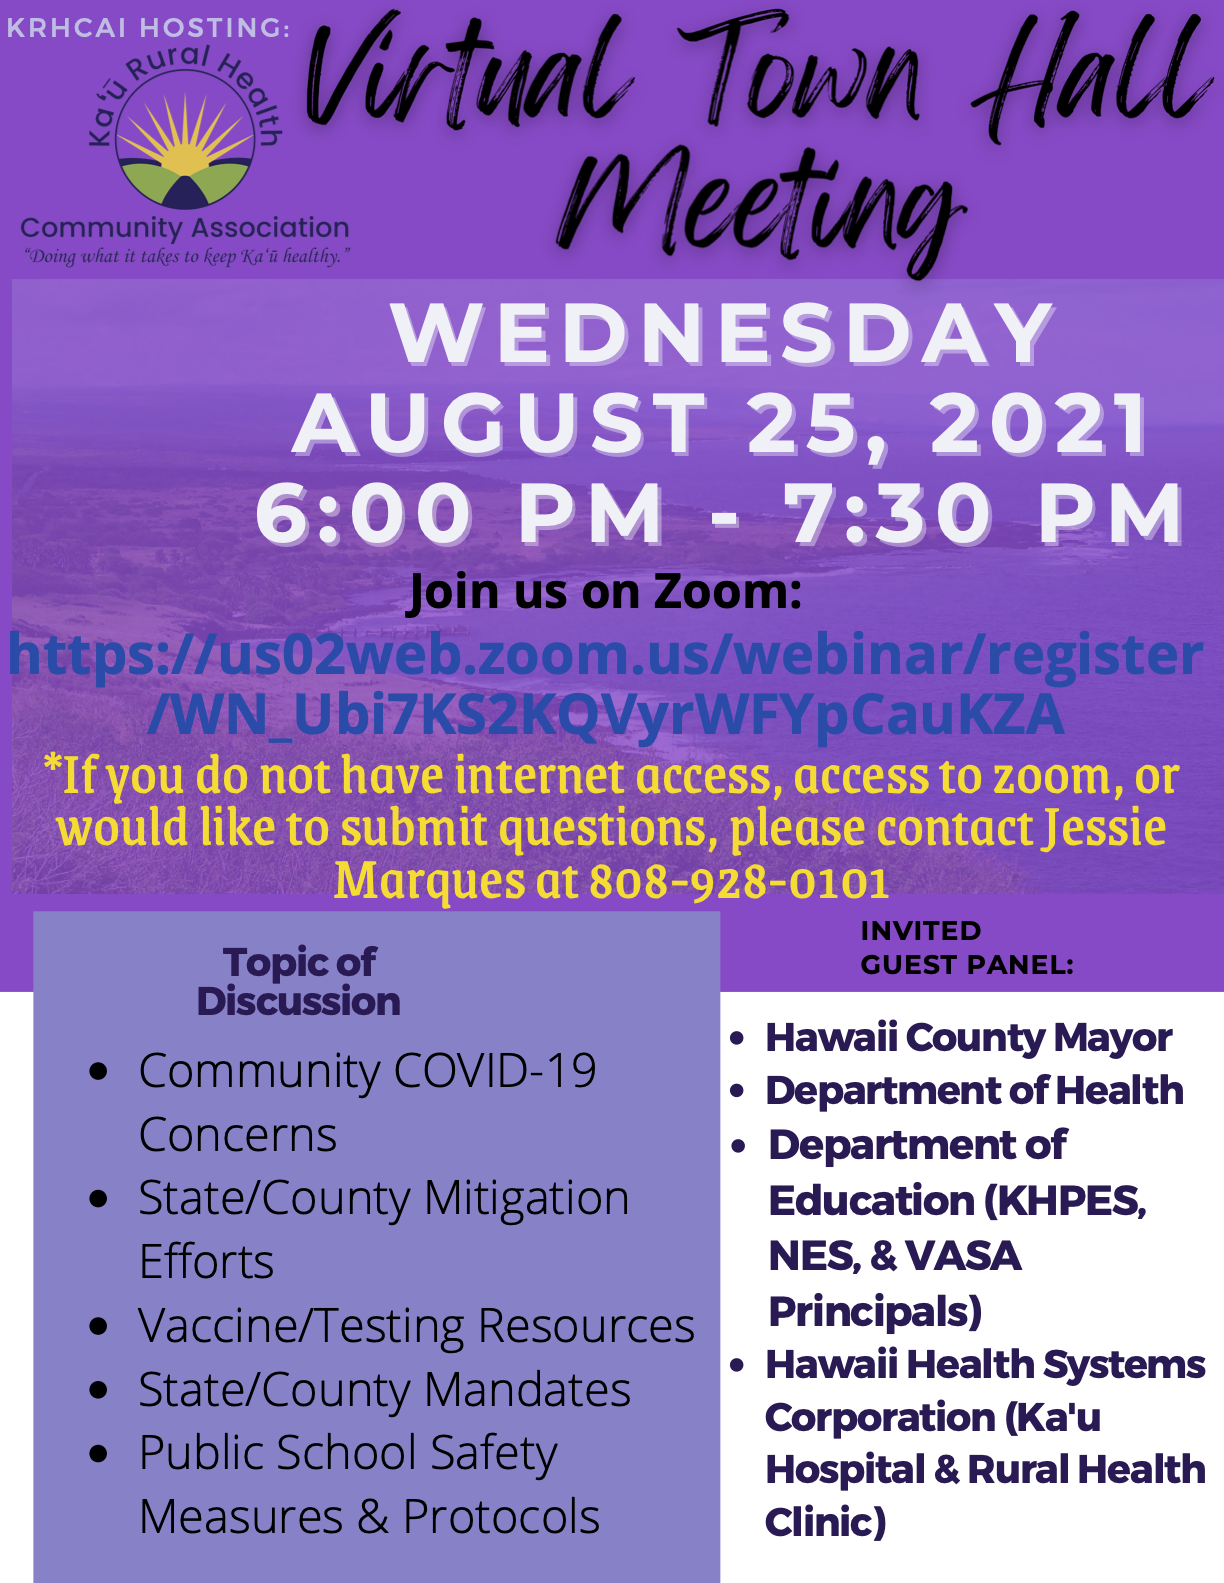 Town Hall Meeting 8.25.21 Flyer (Draft)